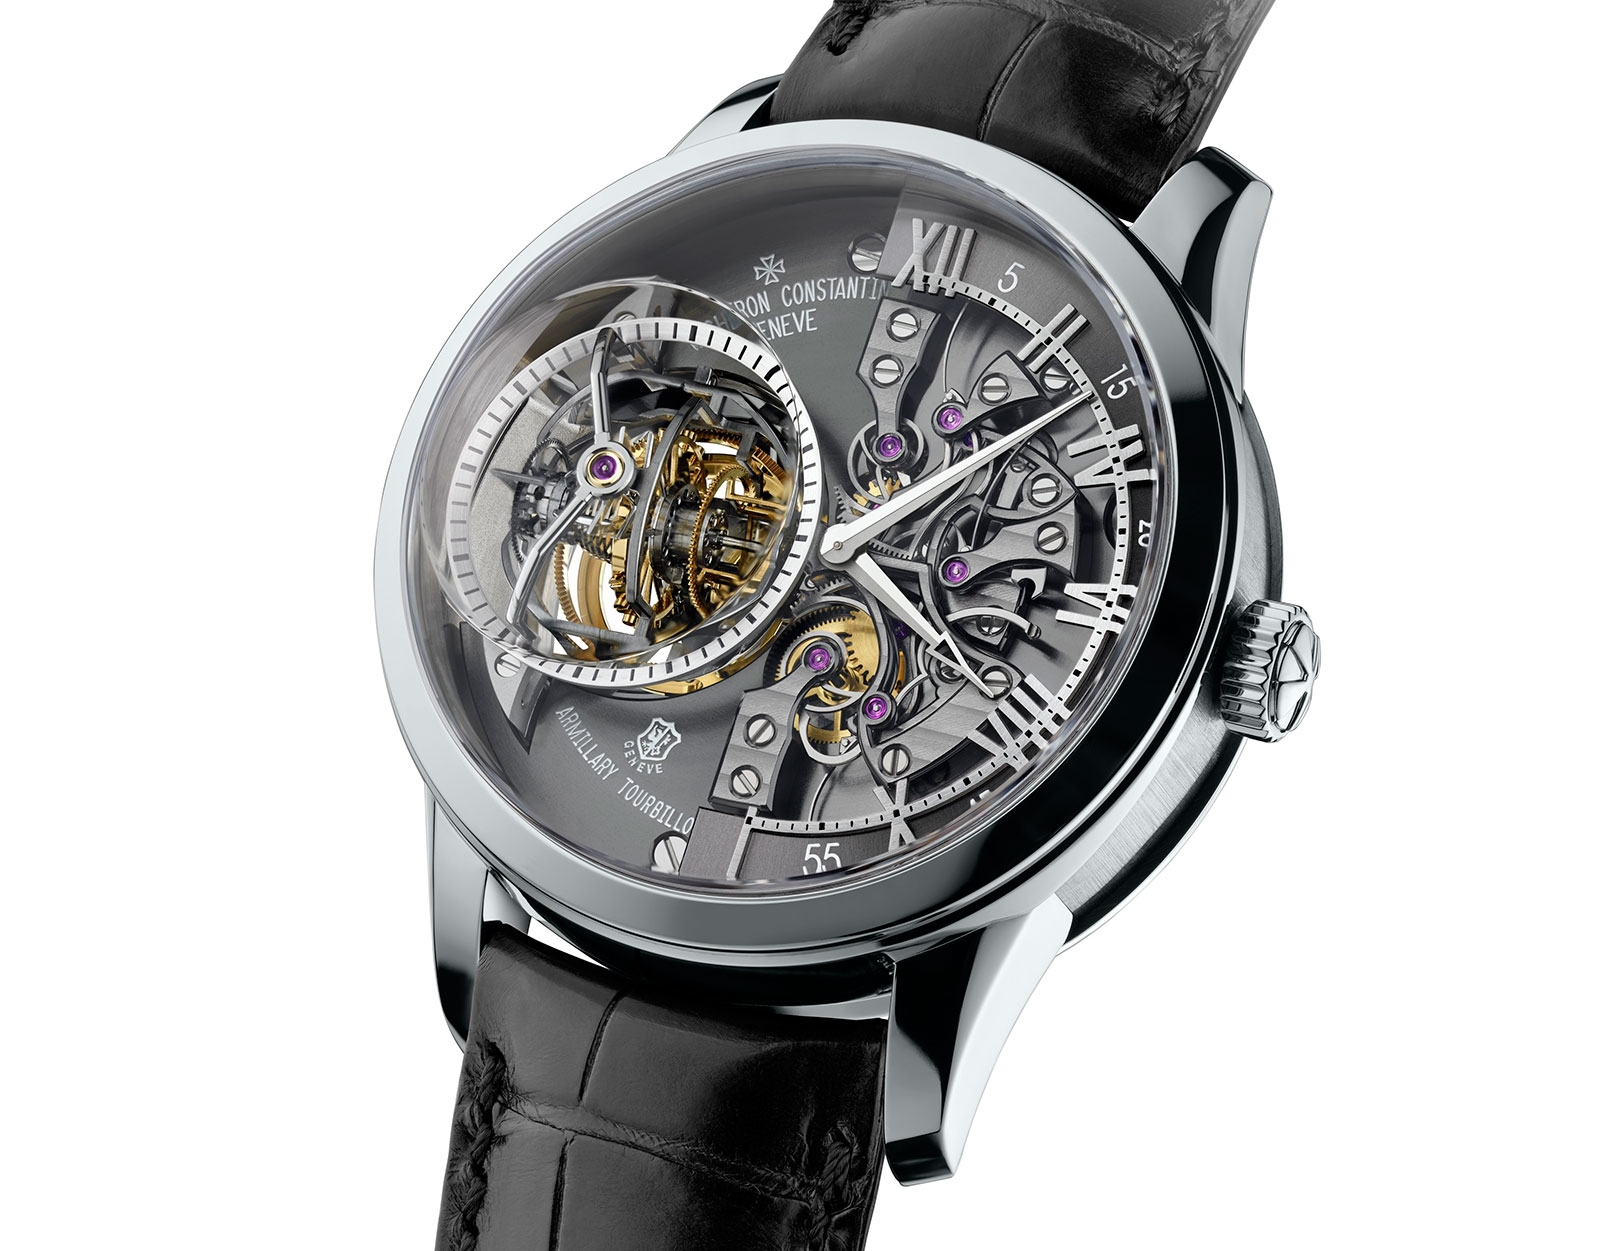 Presenting The Vacheron Constantin Double Axis Armillary Tourbillon Replica